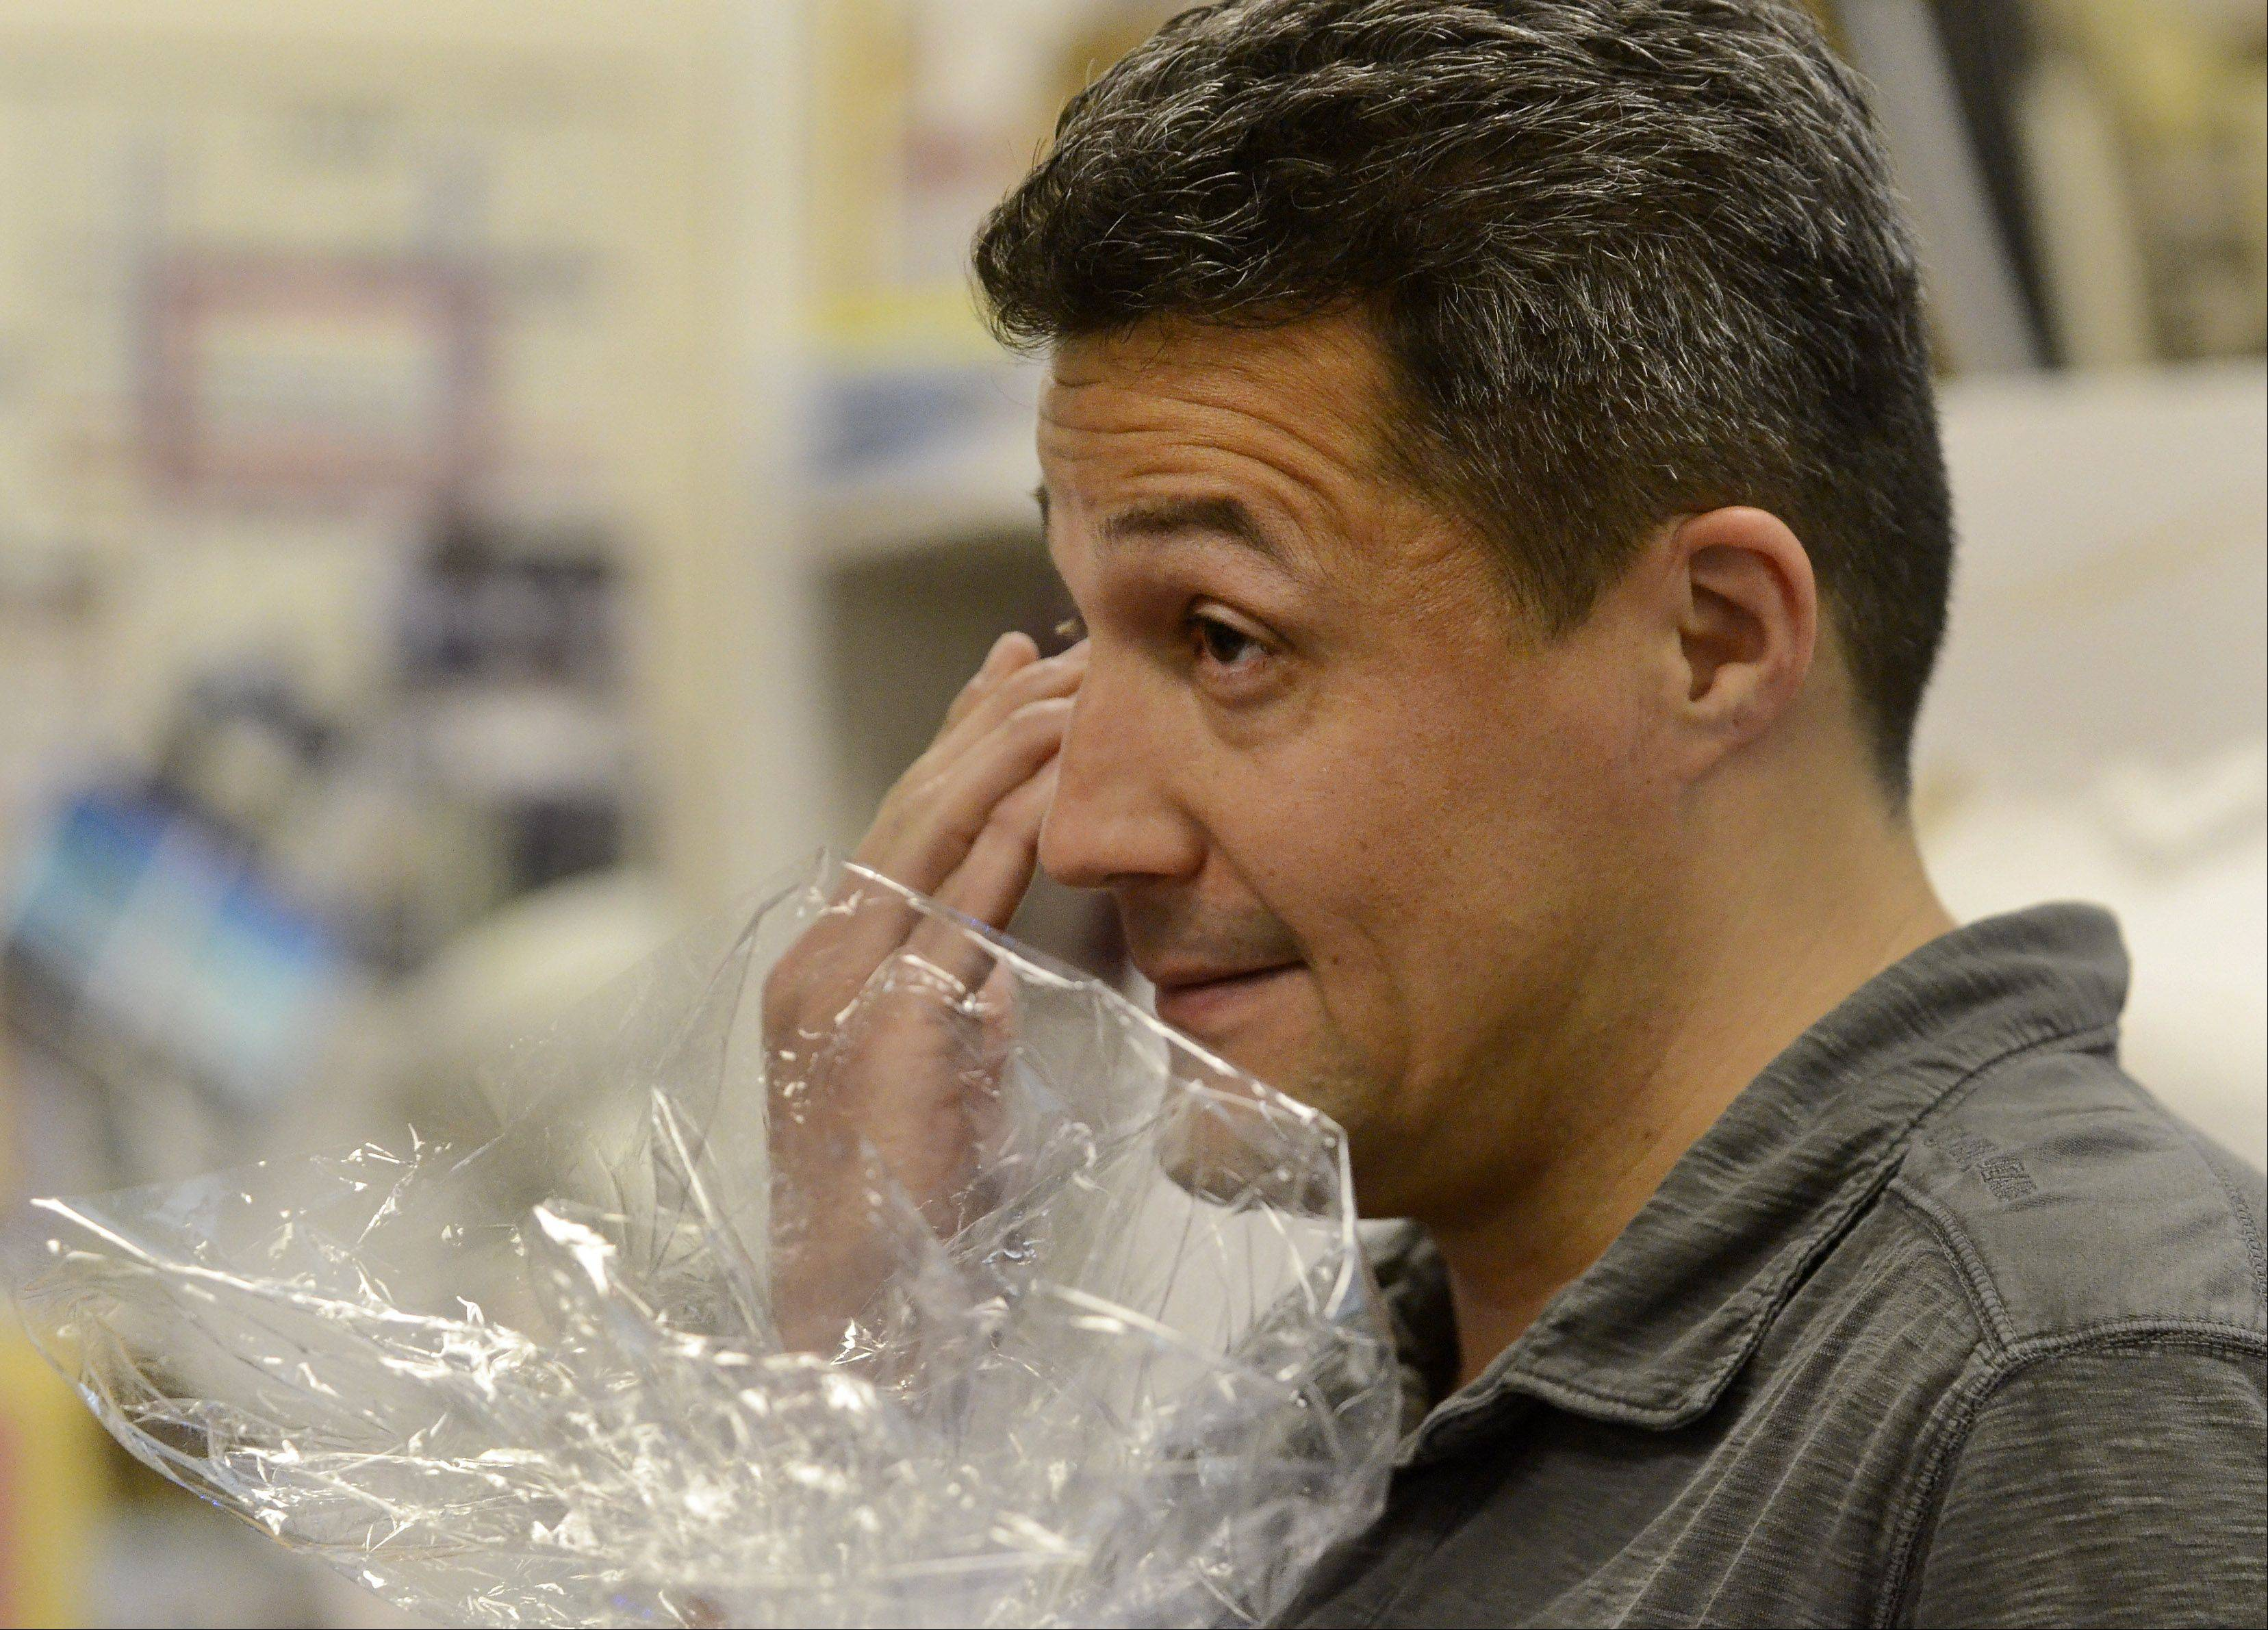 Gregory Regalado, who teaches art, photography and advanced digital imaging at Maine West High School in Des Plaines, tears up after being surprised in his classroom by Golden Apple representatives.